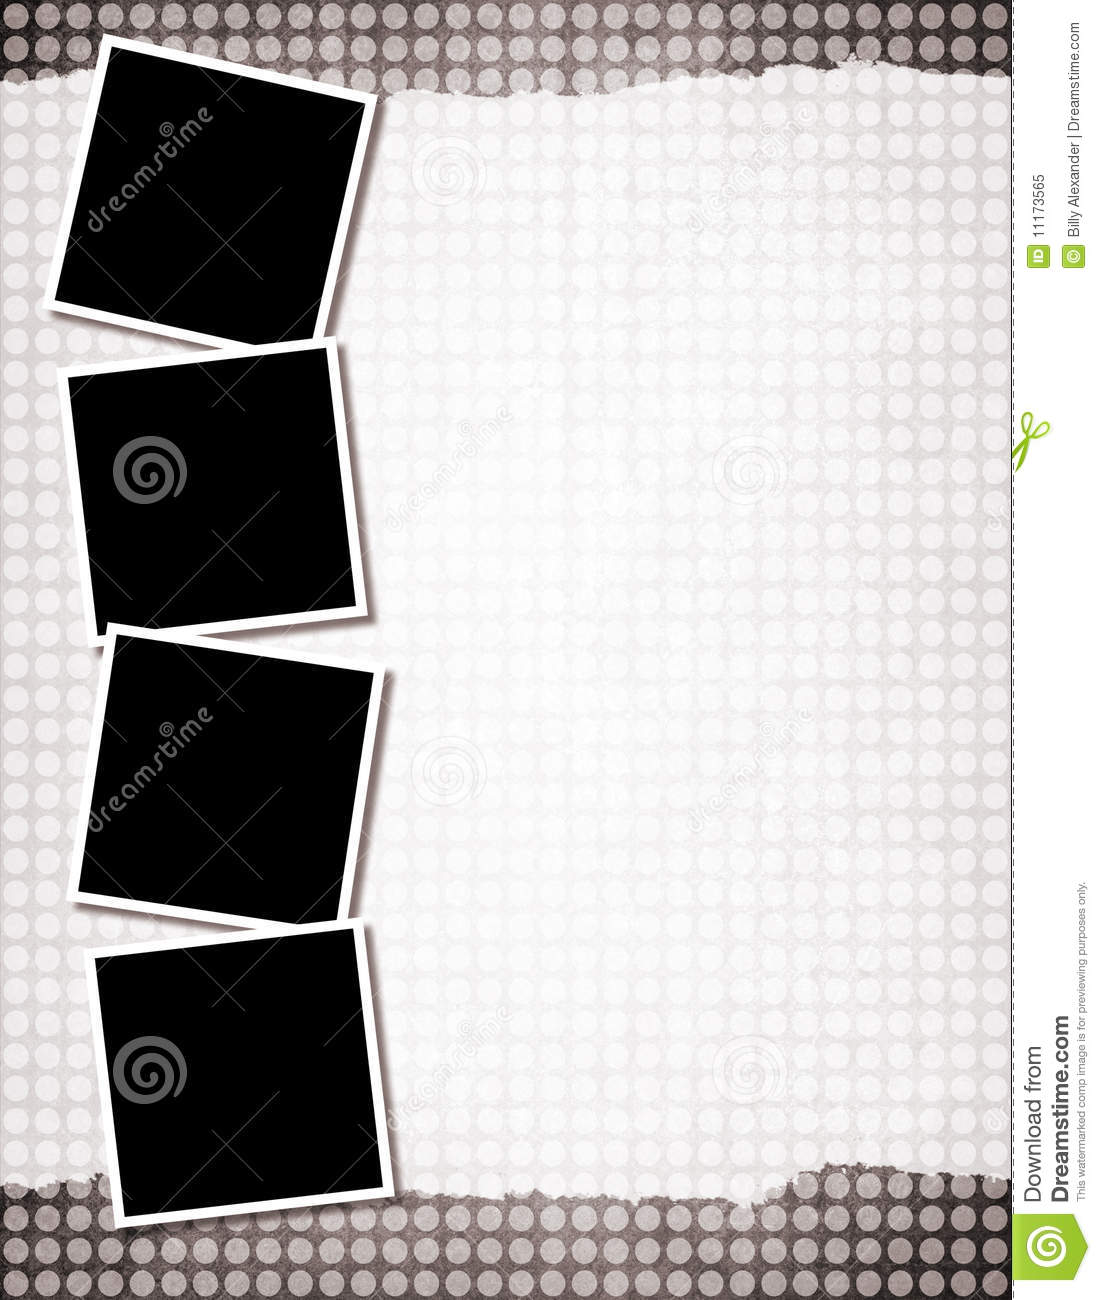 Background Template Royalty Free Stock Photo